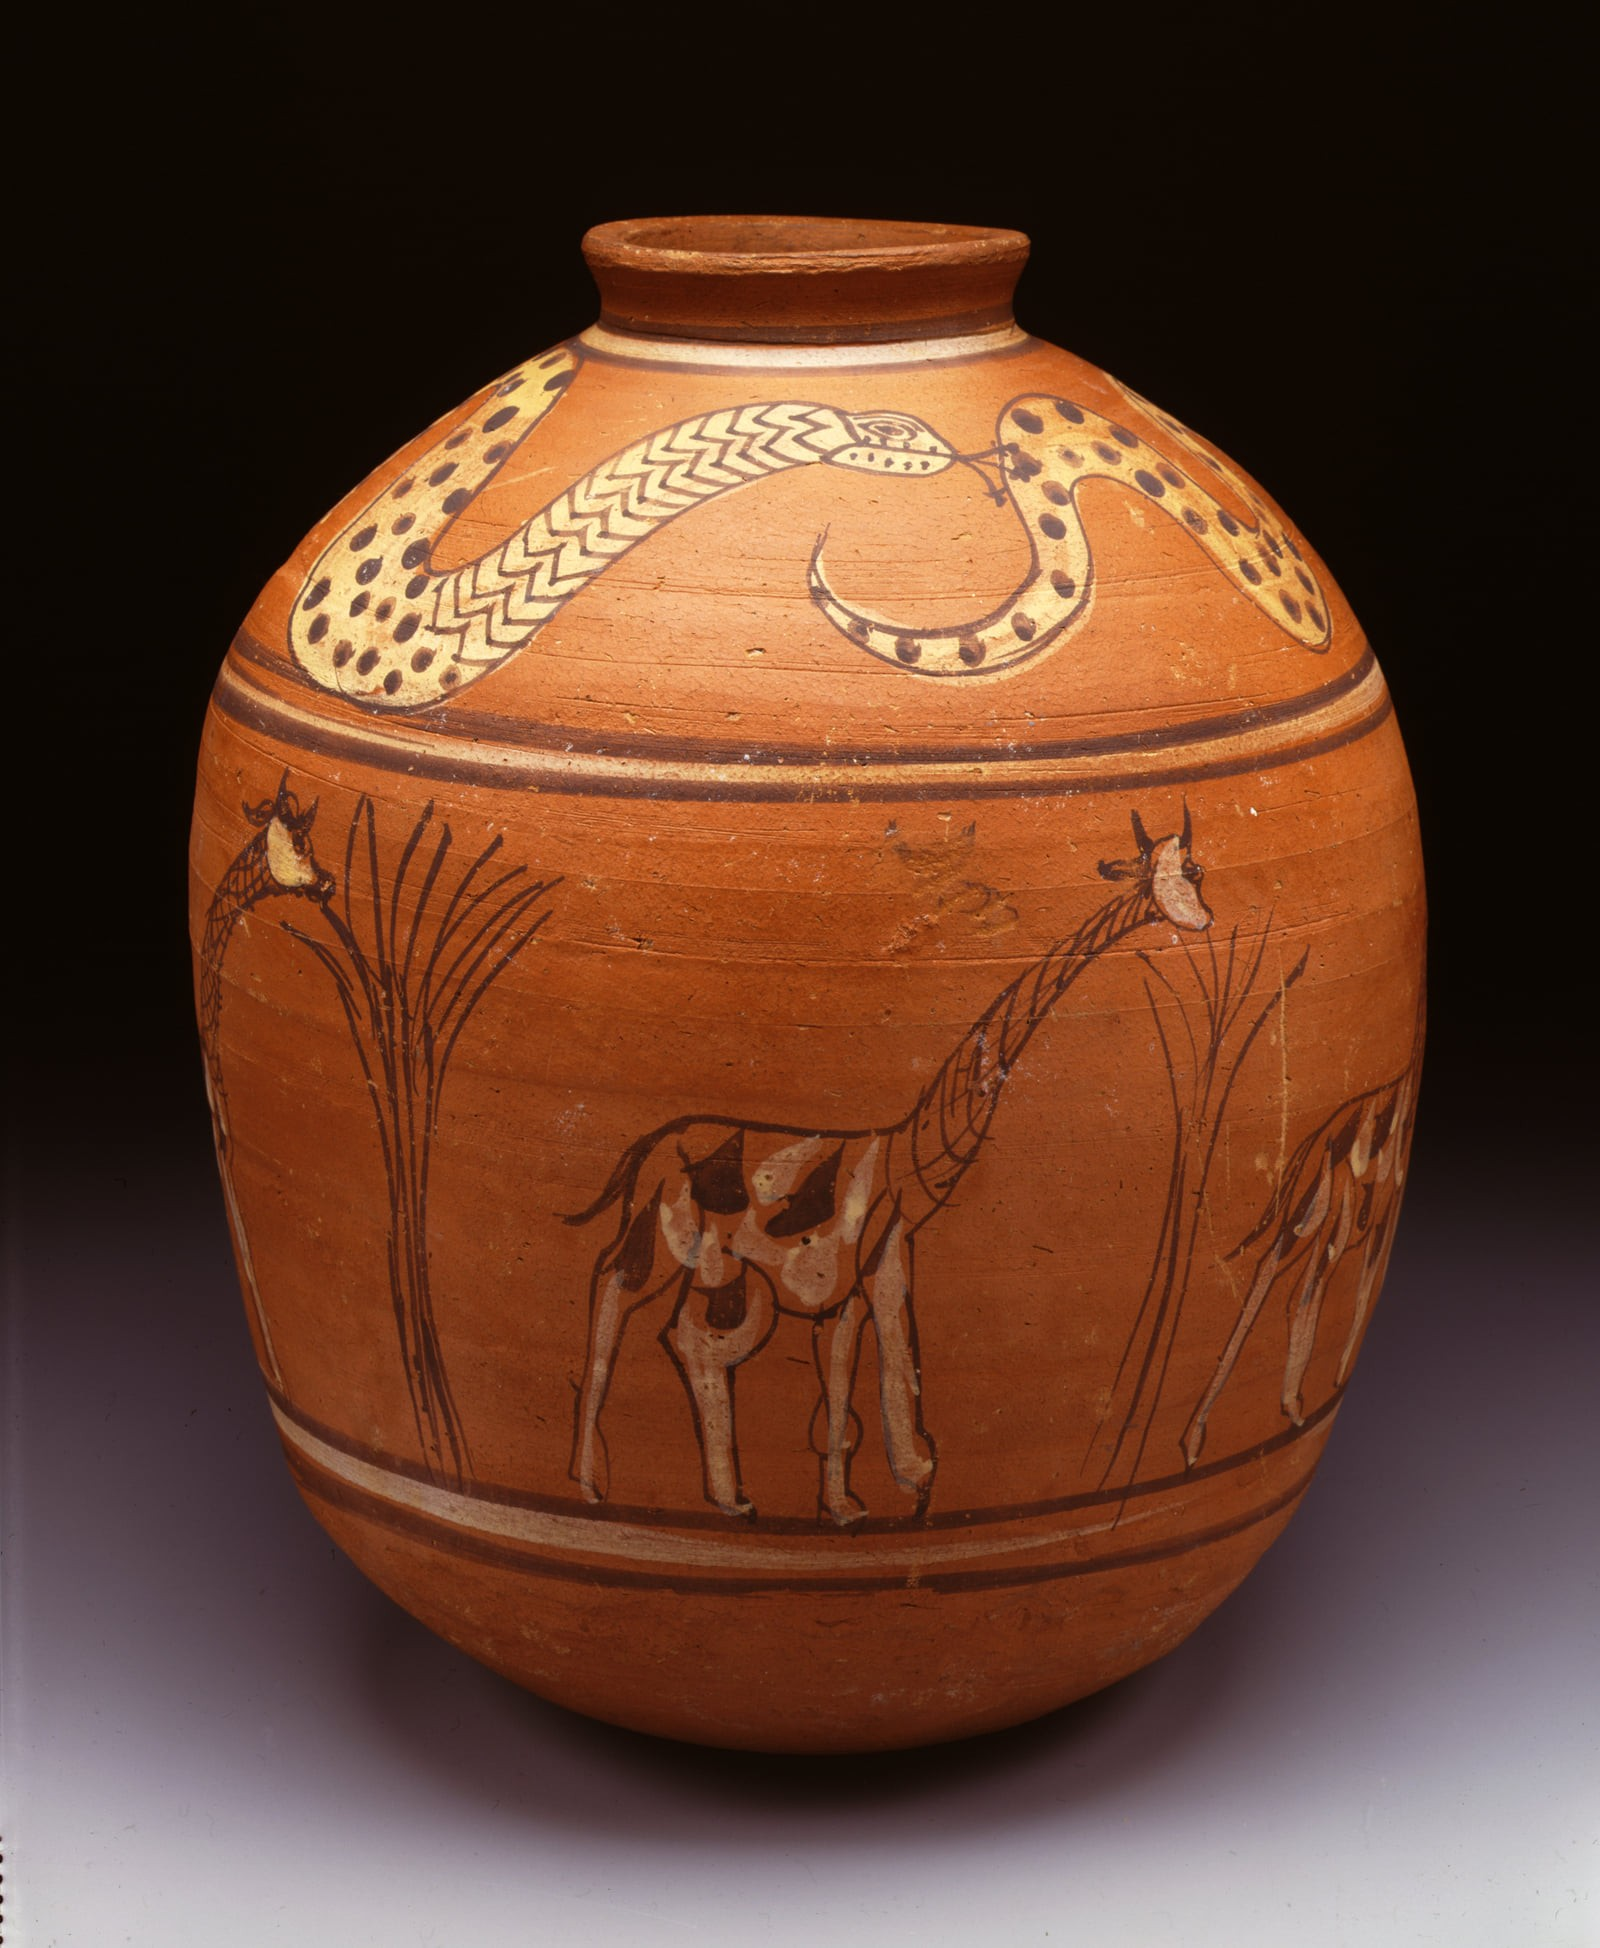 Ceramic painted meroitic jar 100 bc 1bc 34 cm in height from karanog cemetery locus g 566 decorated with a frieze of giraffes and snakes spitting ankh signs